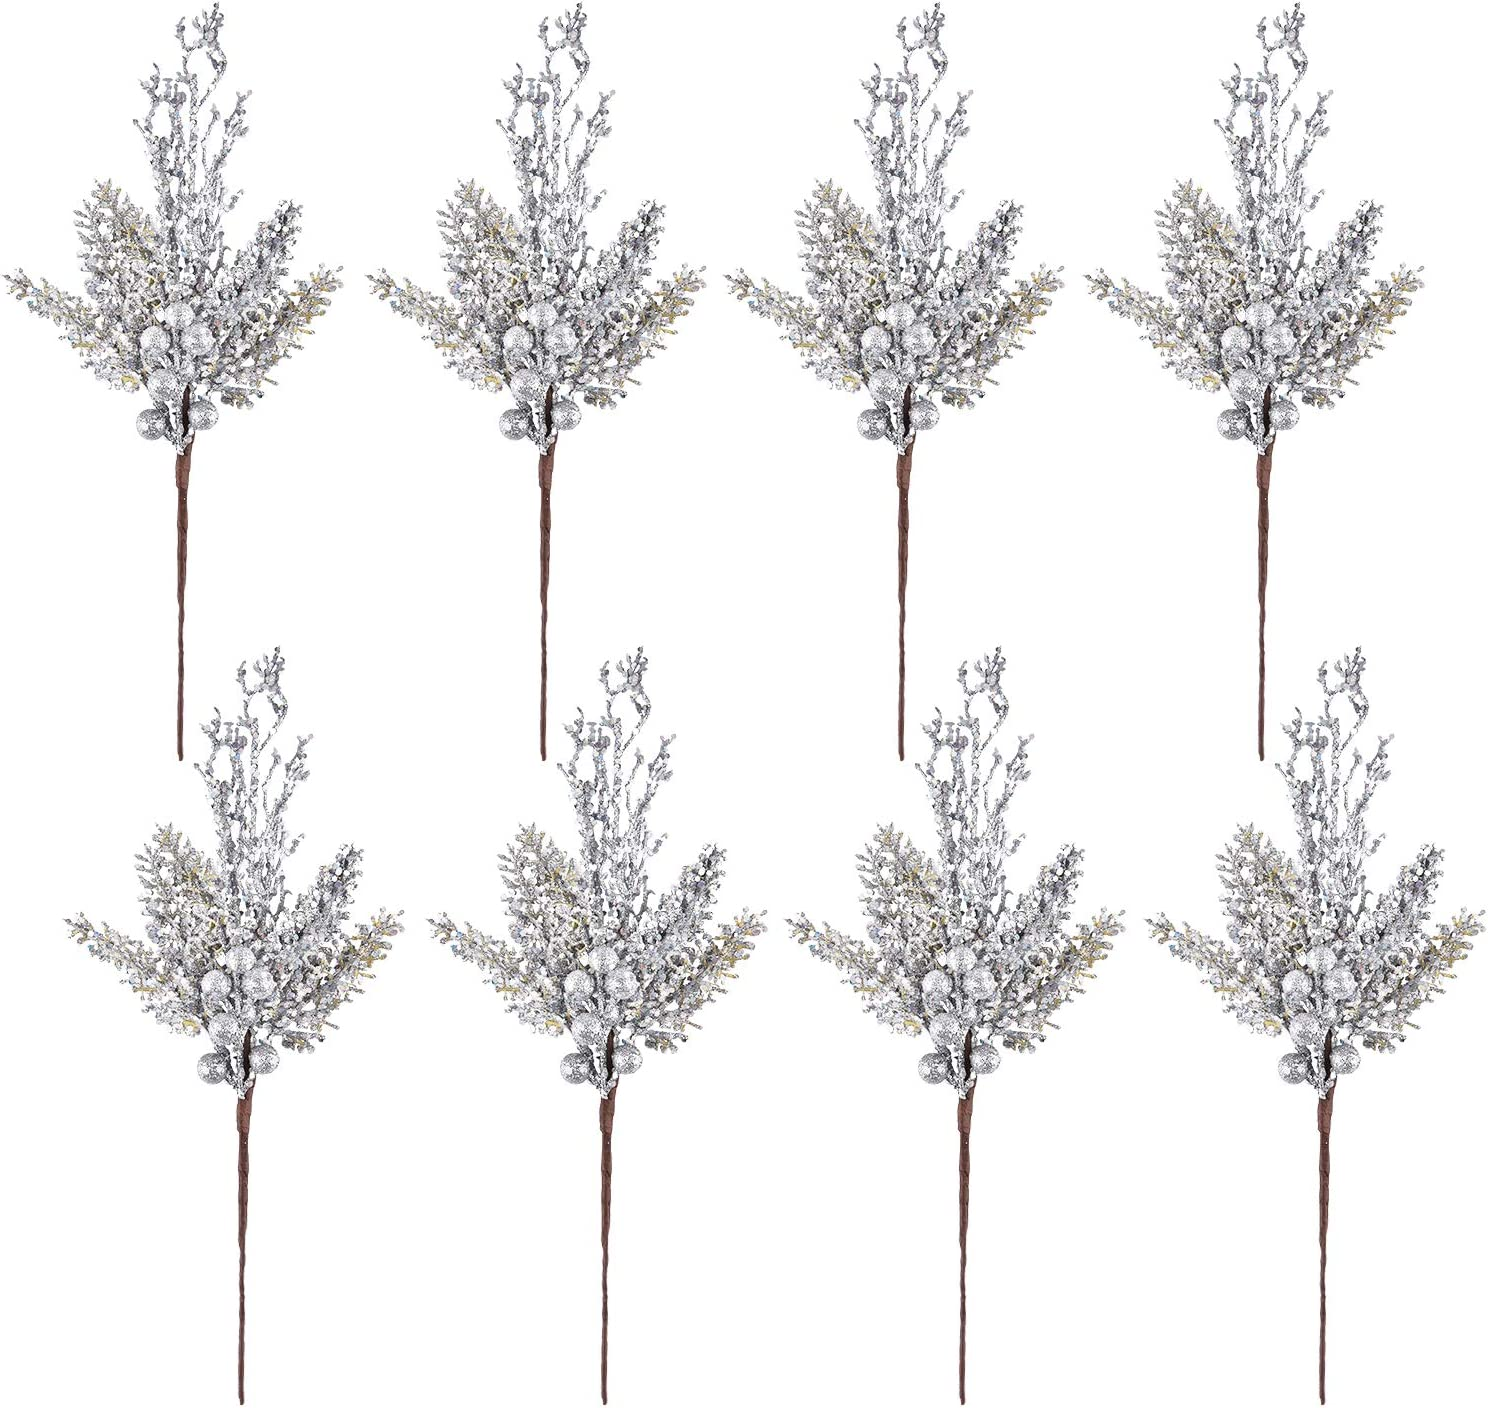 Dolicer 8PCS Xmas Glittery Silver Artificial Berry Picks with Frost Feeling for Home Decor Indoor Outdoor Party Holiday Decorations